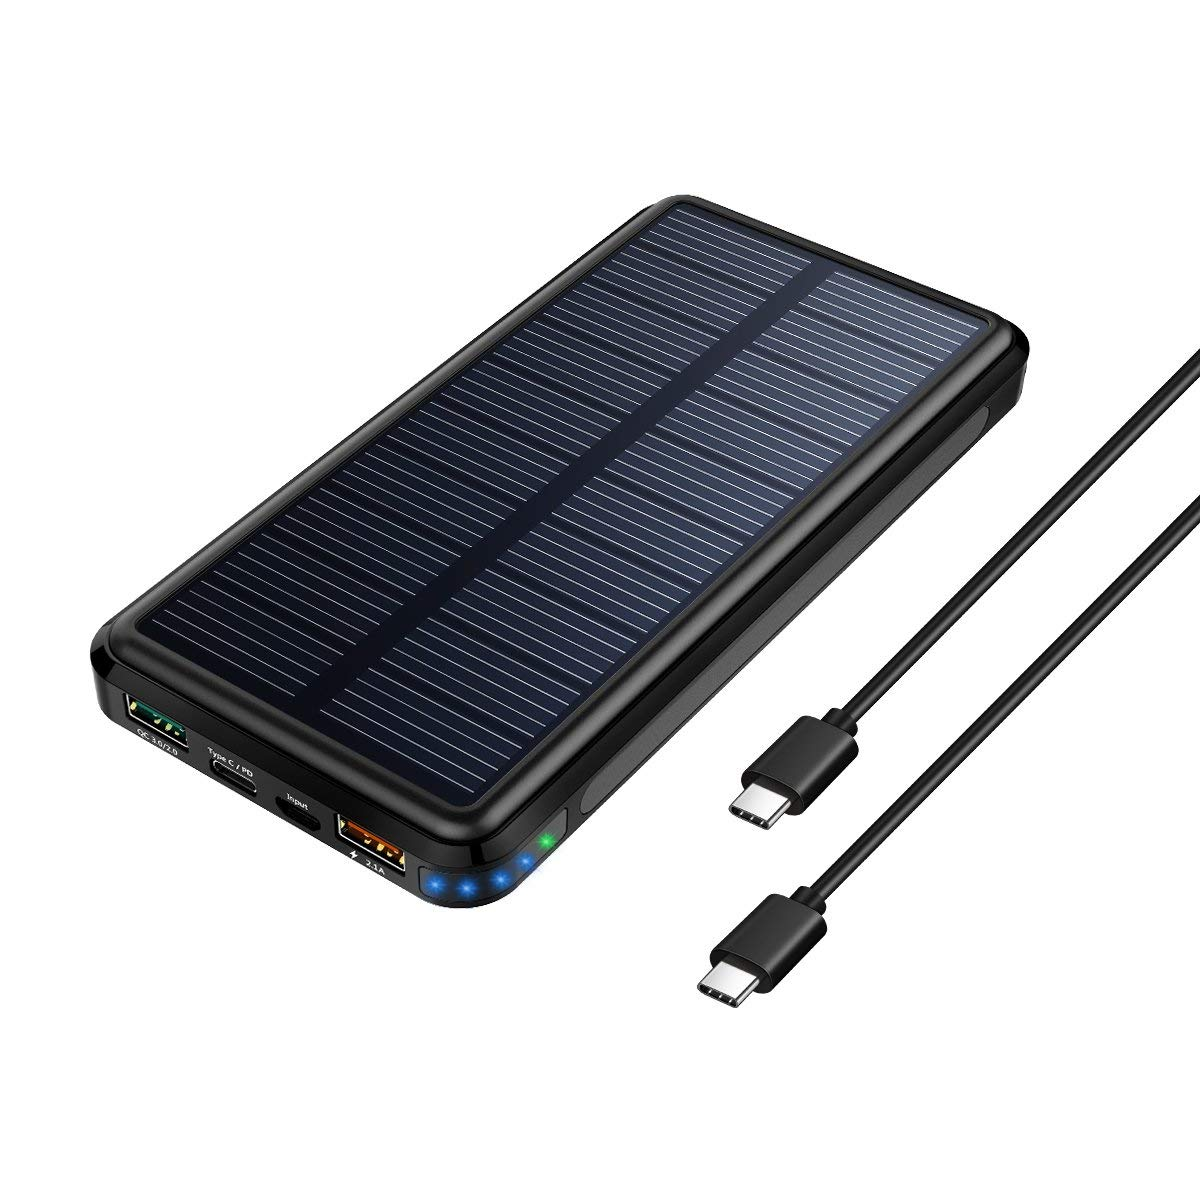 Solar Charger, 24000mAh Solar Portable Charger with QC 3.0 and Type C/PD input&output by Dizaul